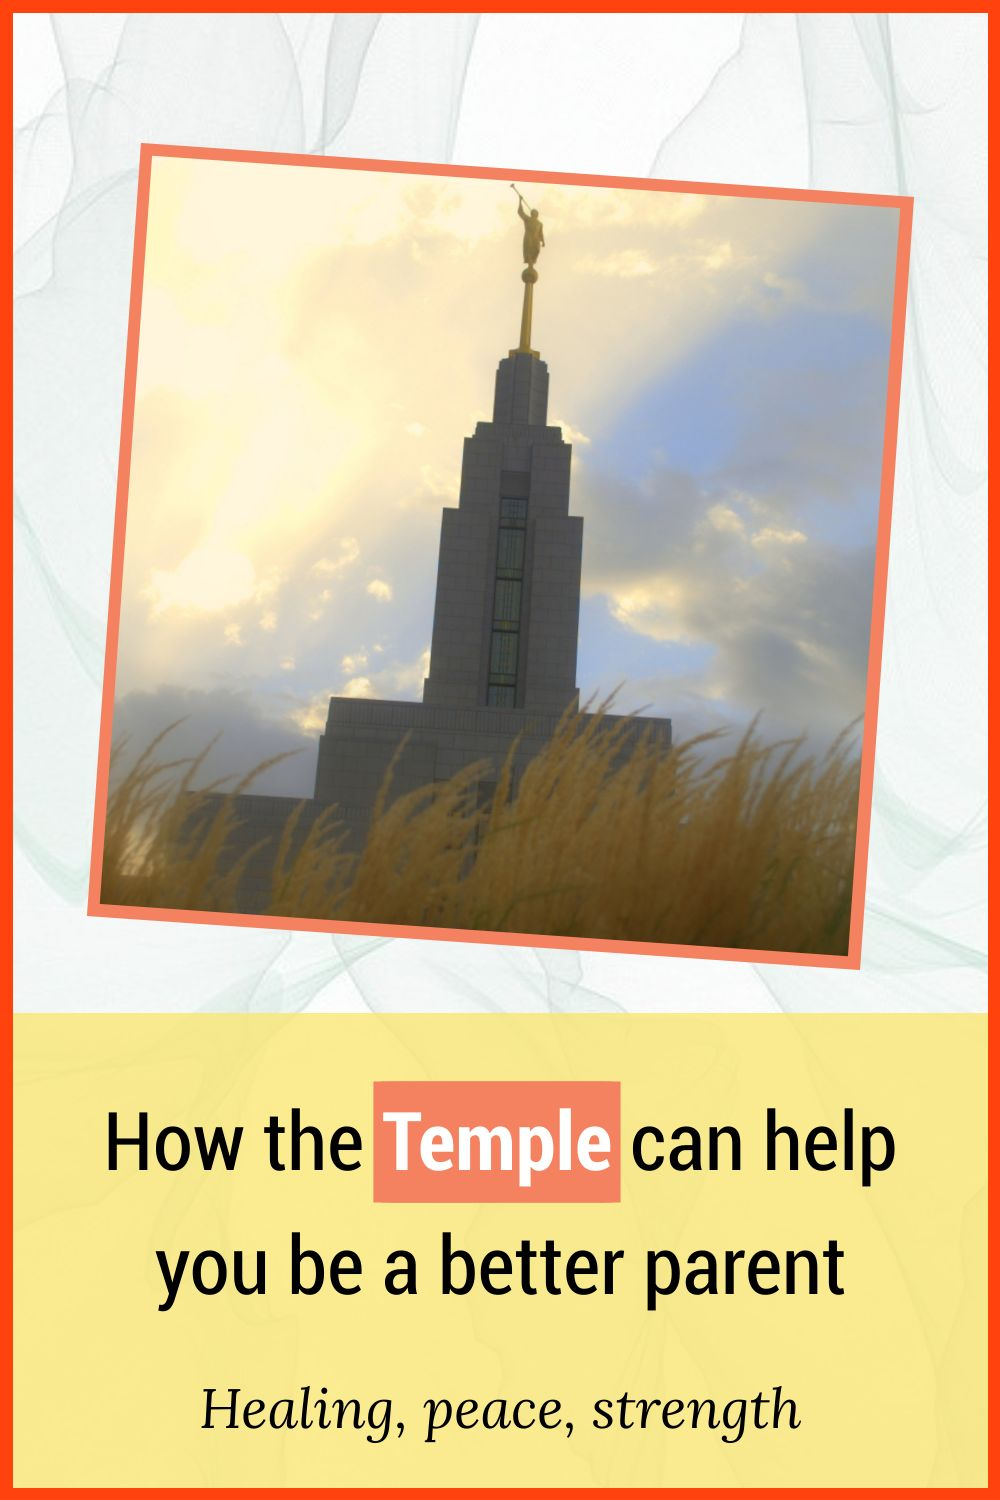 The Temple can help you be a better parent: healing, peace, strength